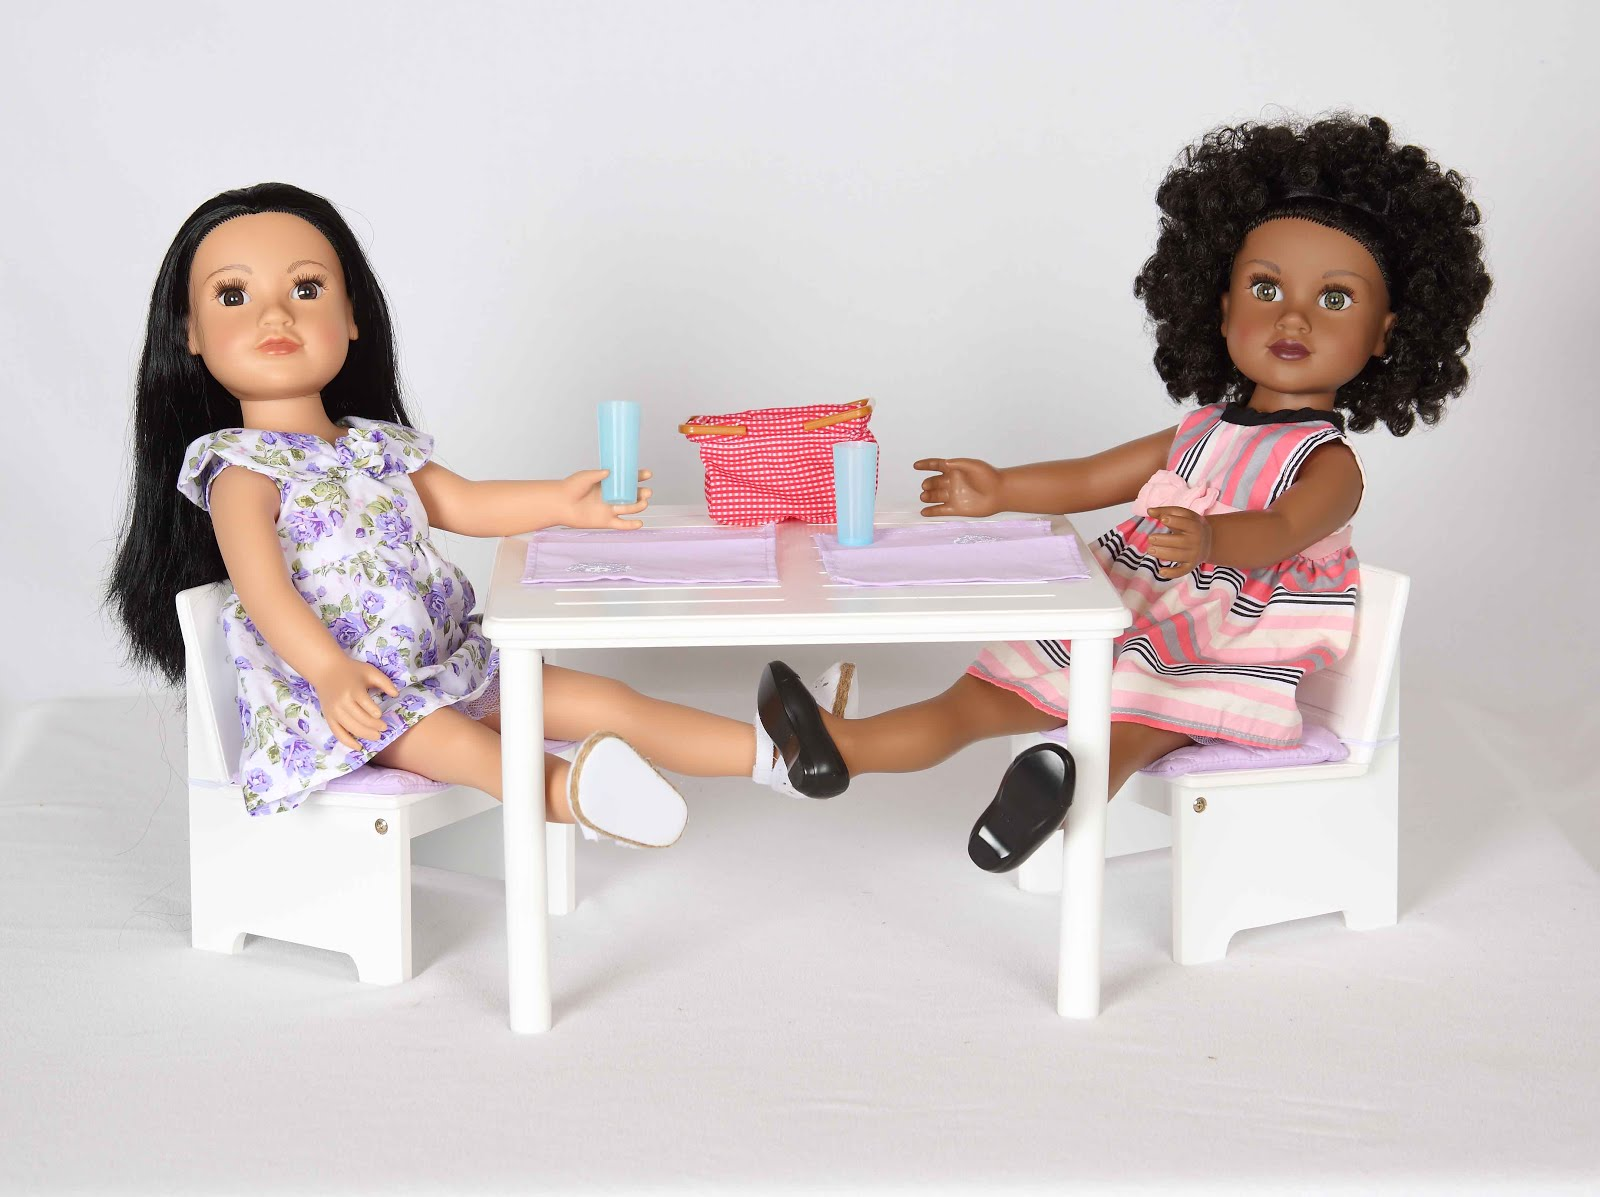 My Journey Girls Dolls Adventures Top 5 Journey Girls